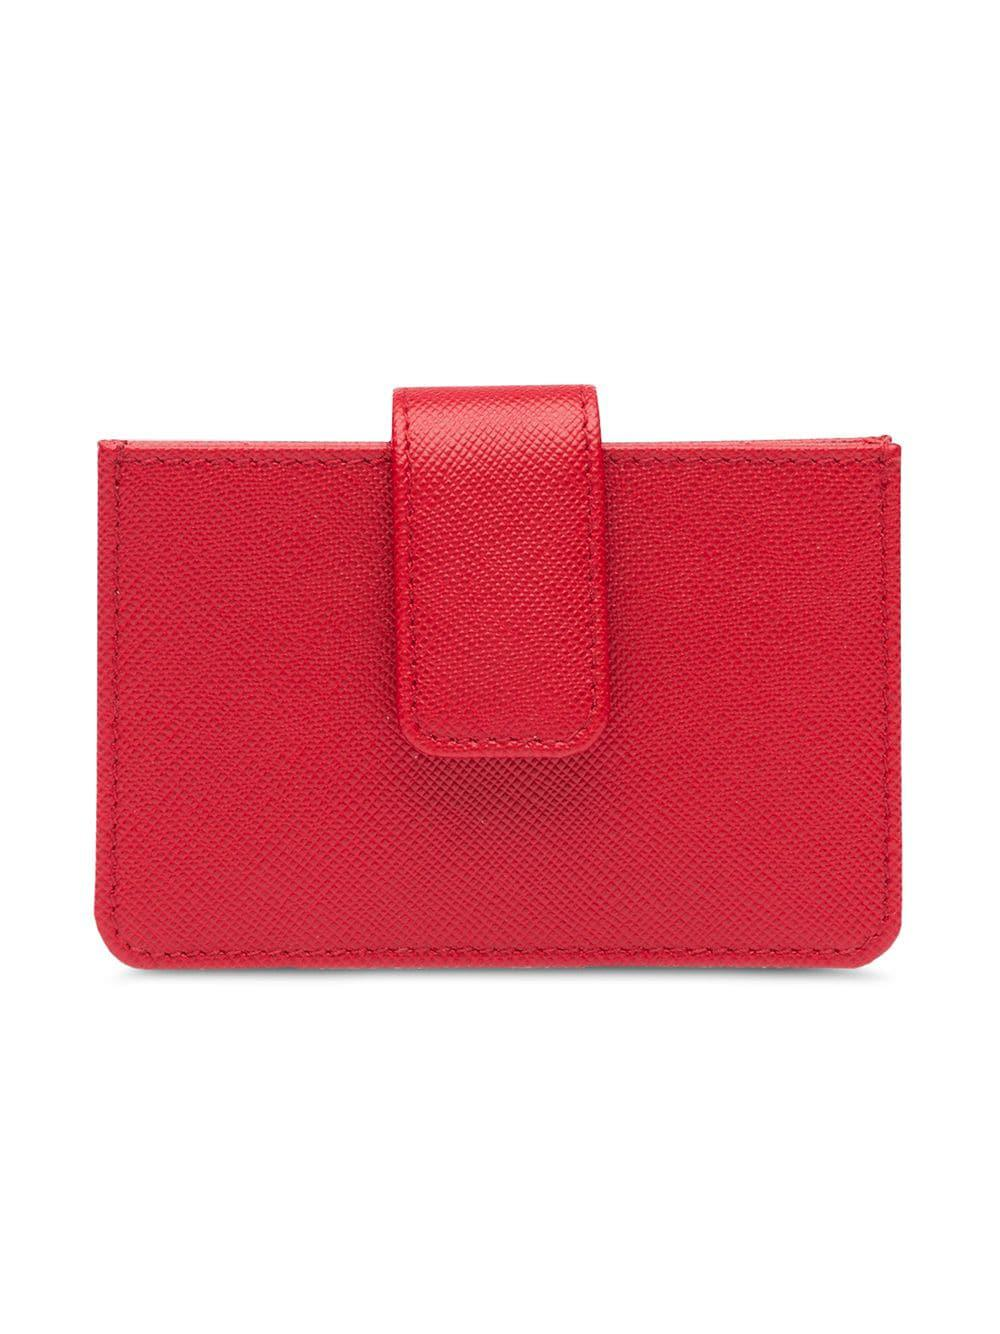 53adbeb75b05 Prada Saffiano Leather Cardholder in Red - Lyst